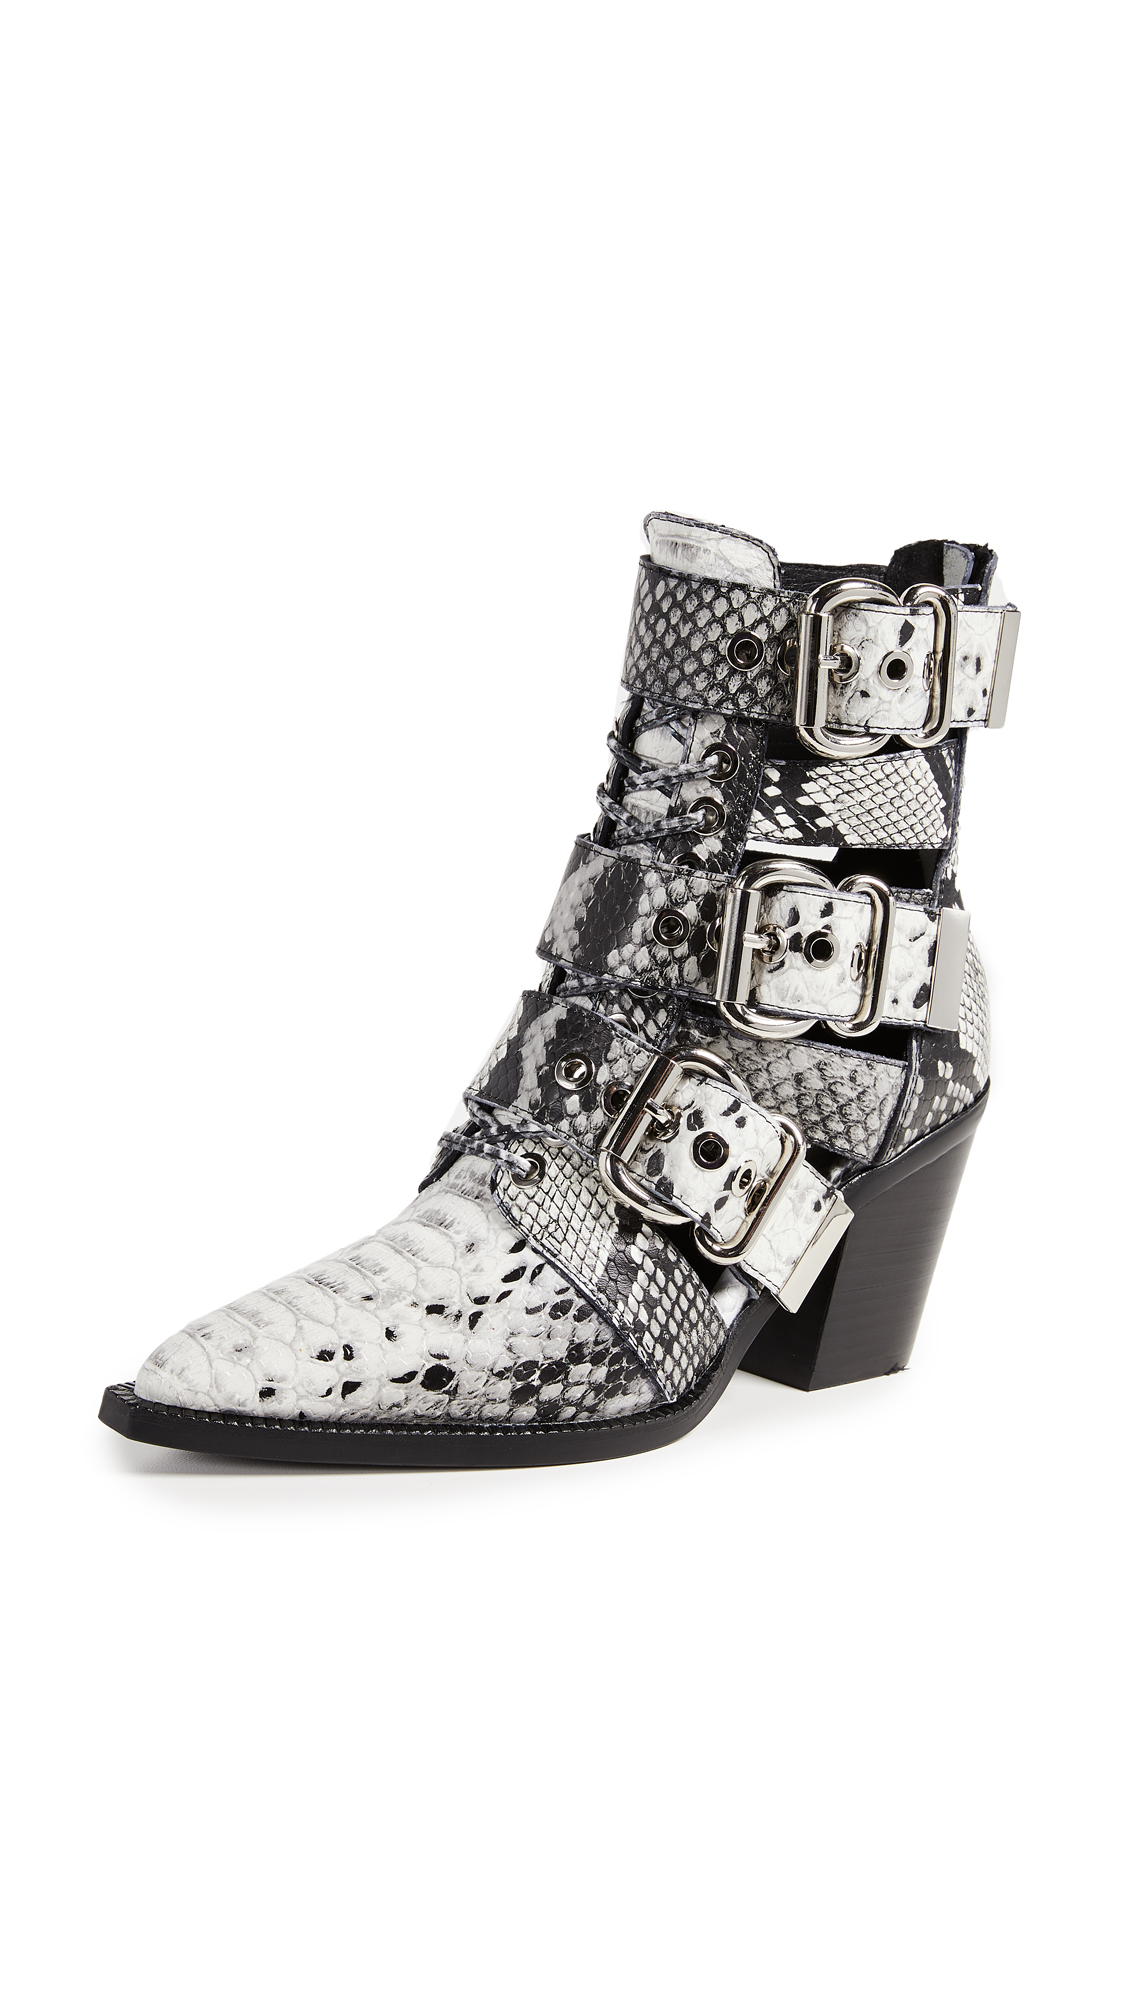 Jeffrey Campbell Caceres Buckle Booties - Black/White Snake